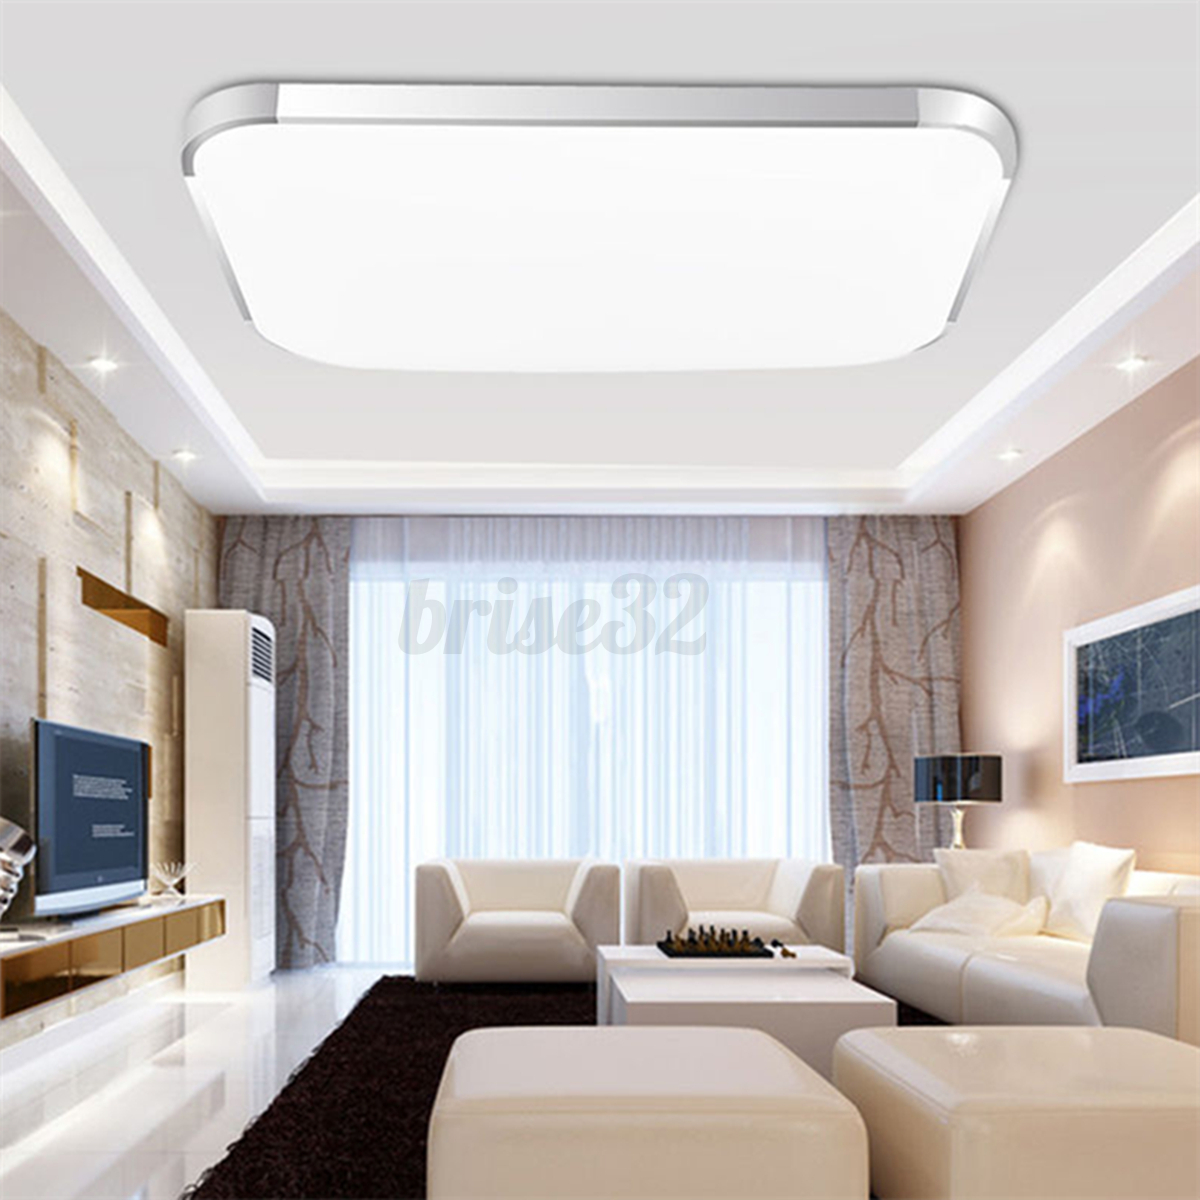 modern led square ceiling down light bedroom living room 12599 | c982268d96379acc23f092272493949993949505cdcb97bef4a745cd8414be8ec4d4a0c6e7934546c7c60323f54ecb